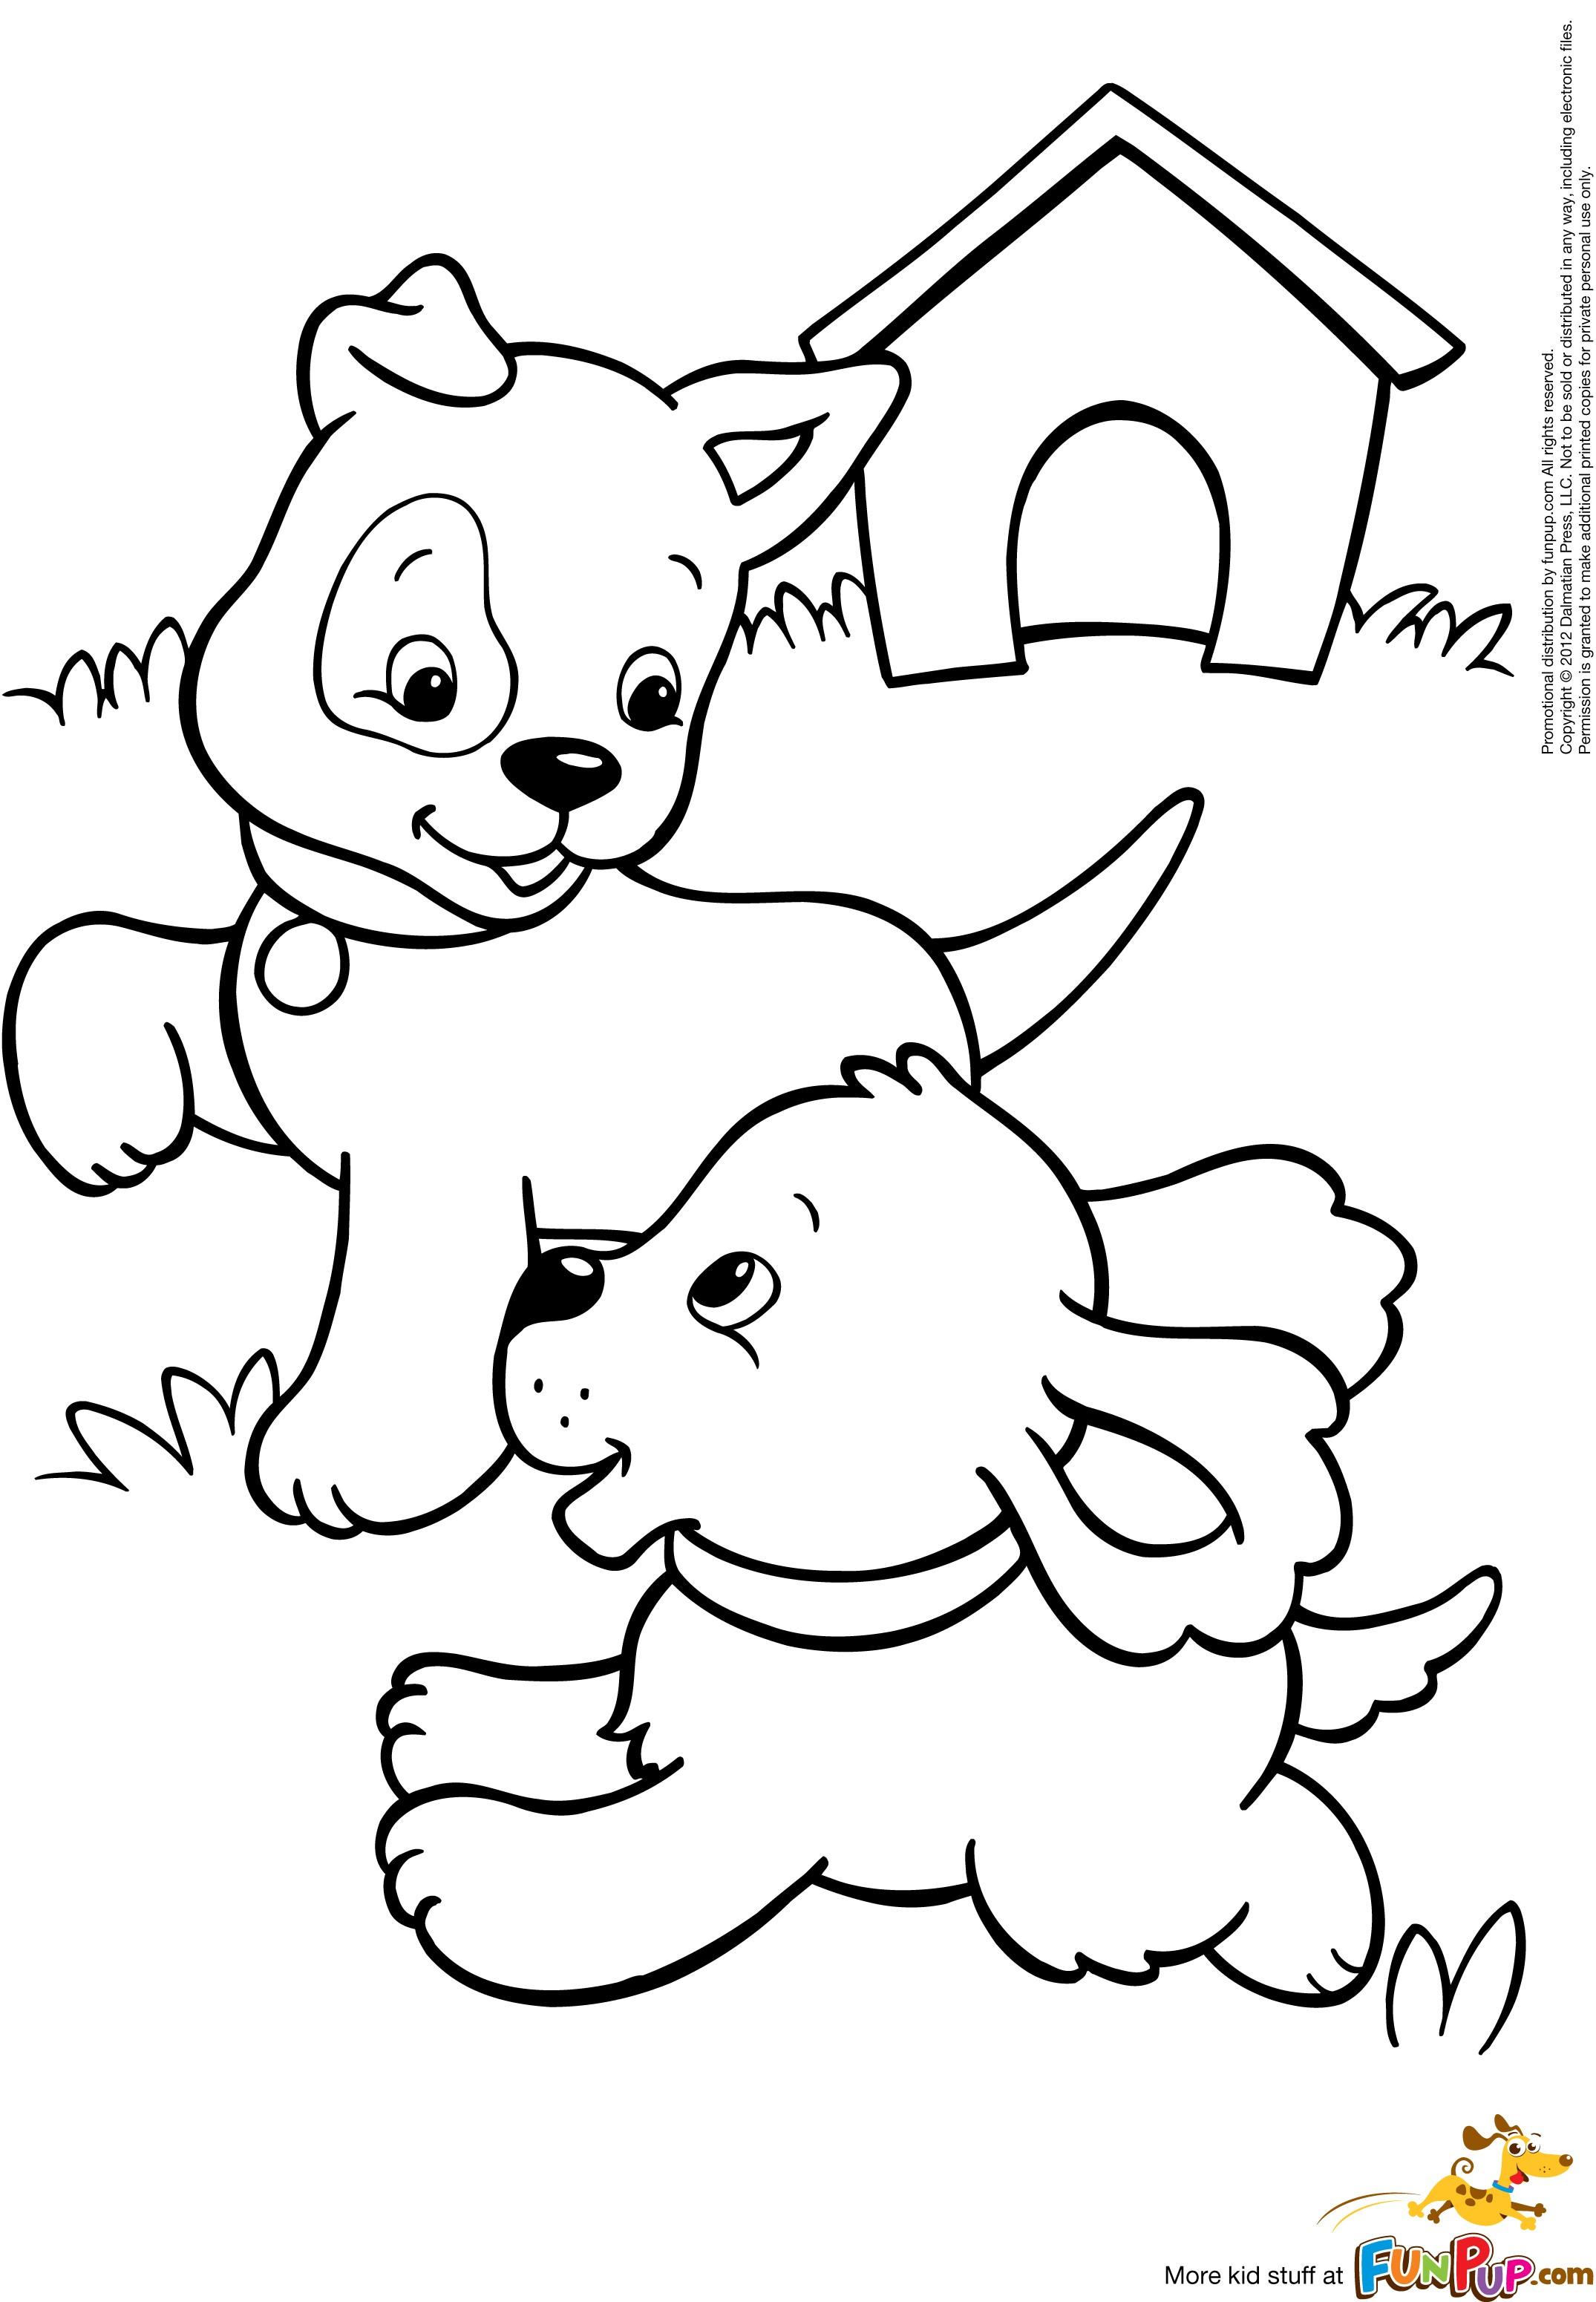 dogs pictures to print realistic puppy coloring pages download and print for free to print dogs pictures